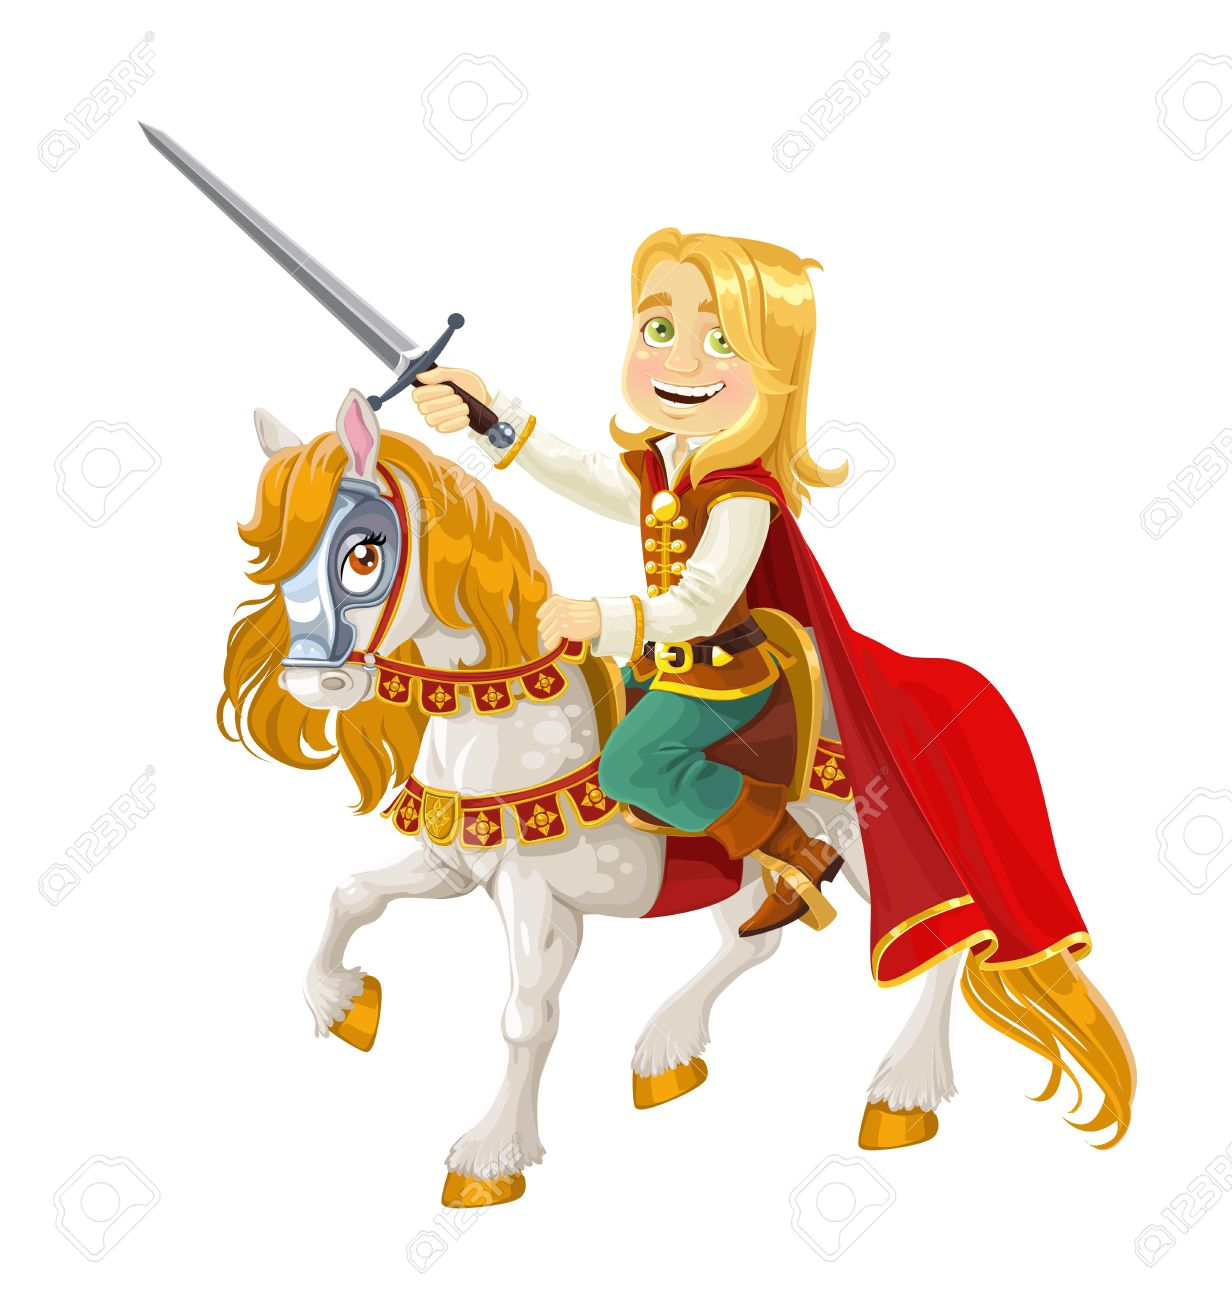 prince charming on a white horse royalty free cliparts vectors